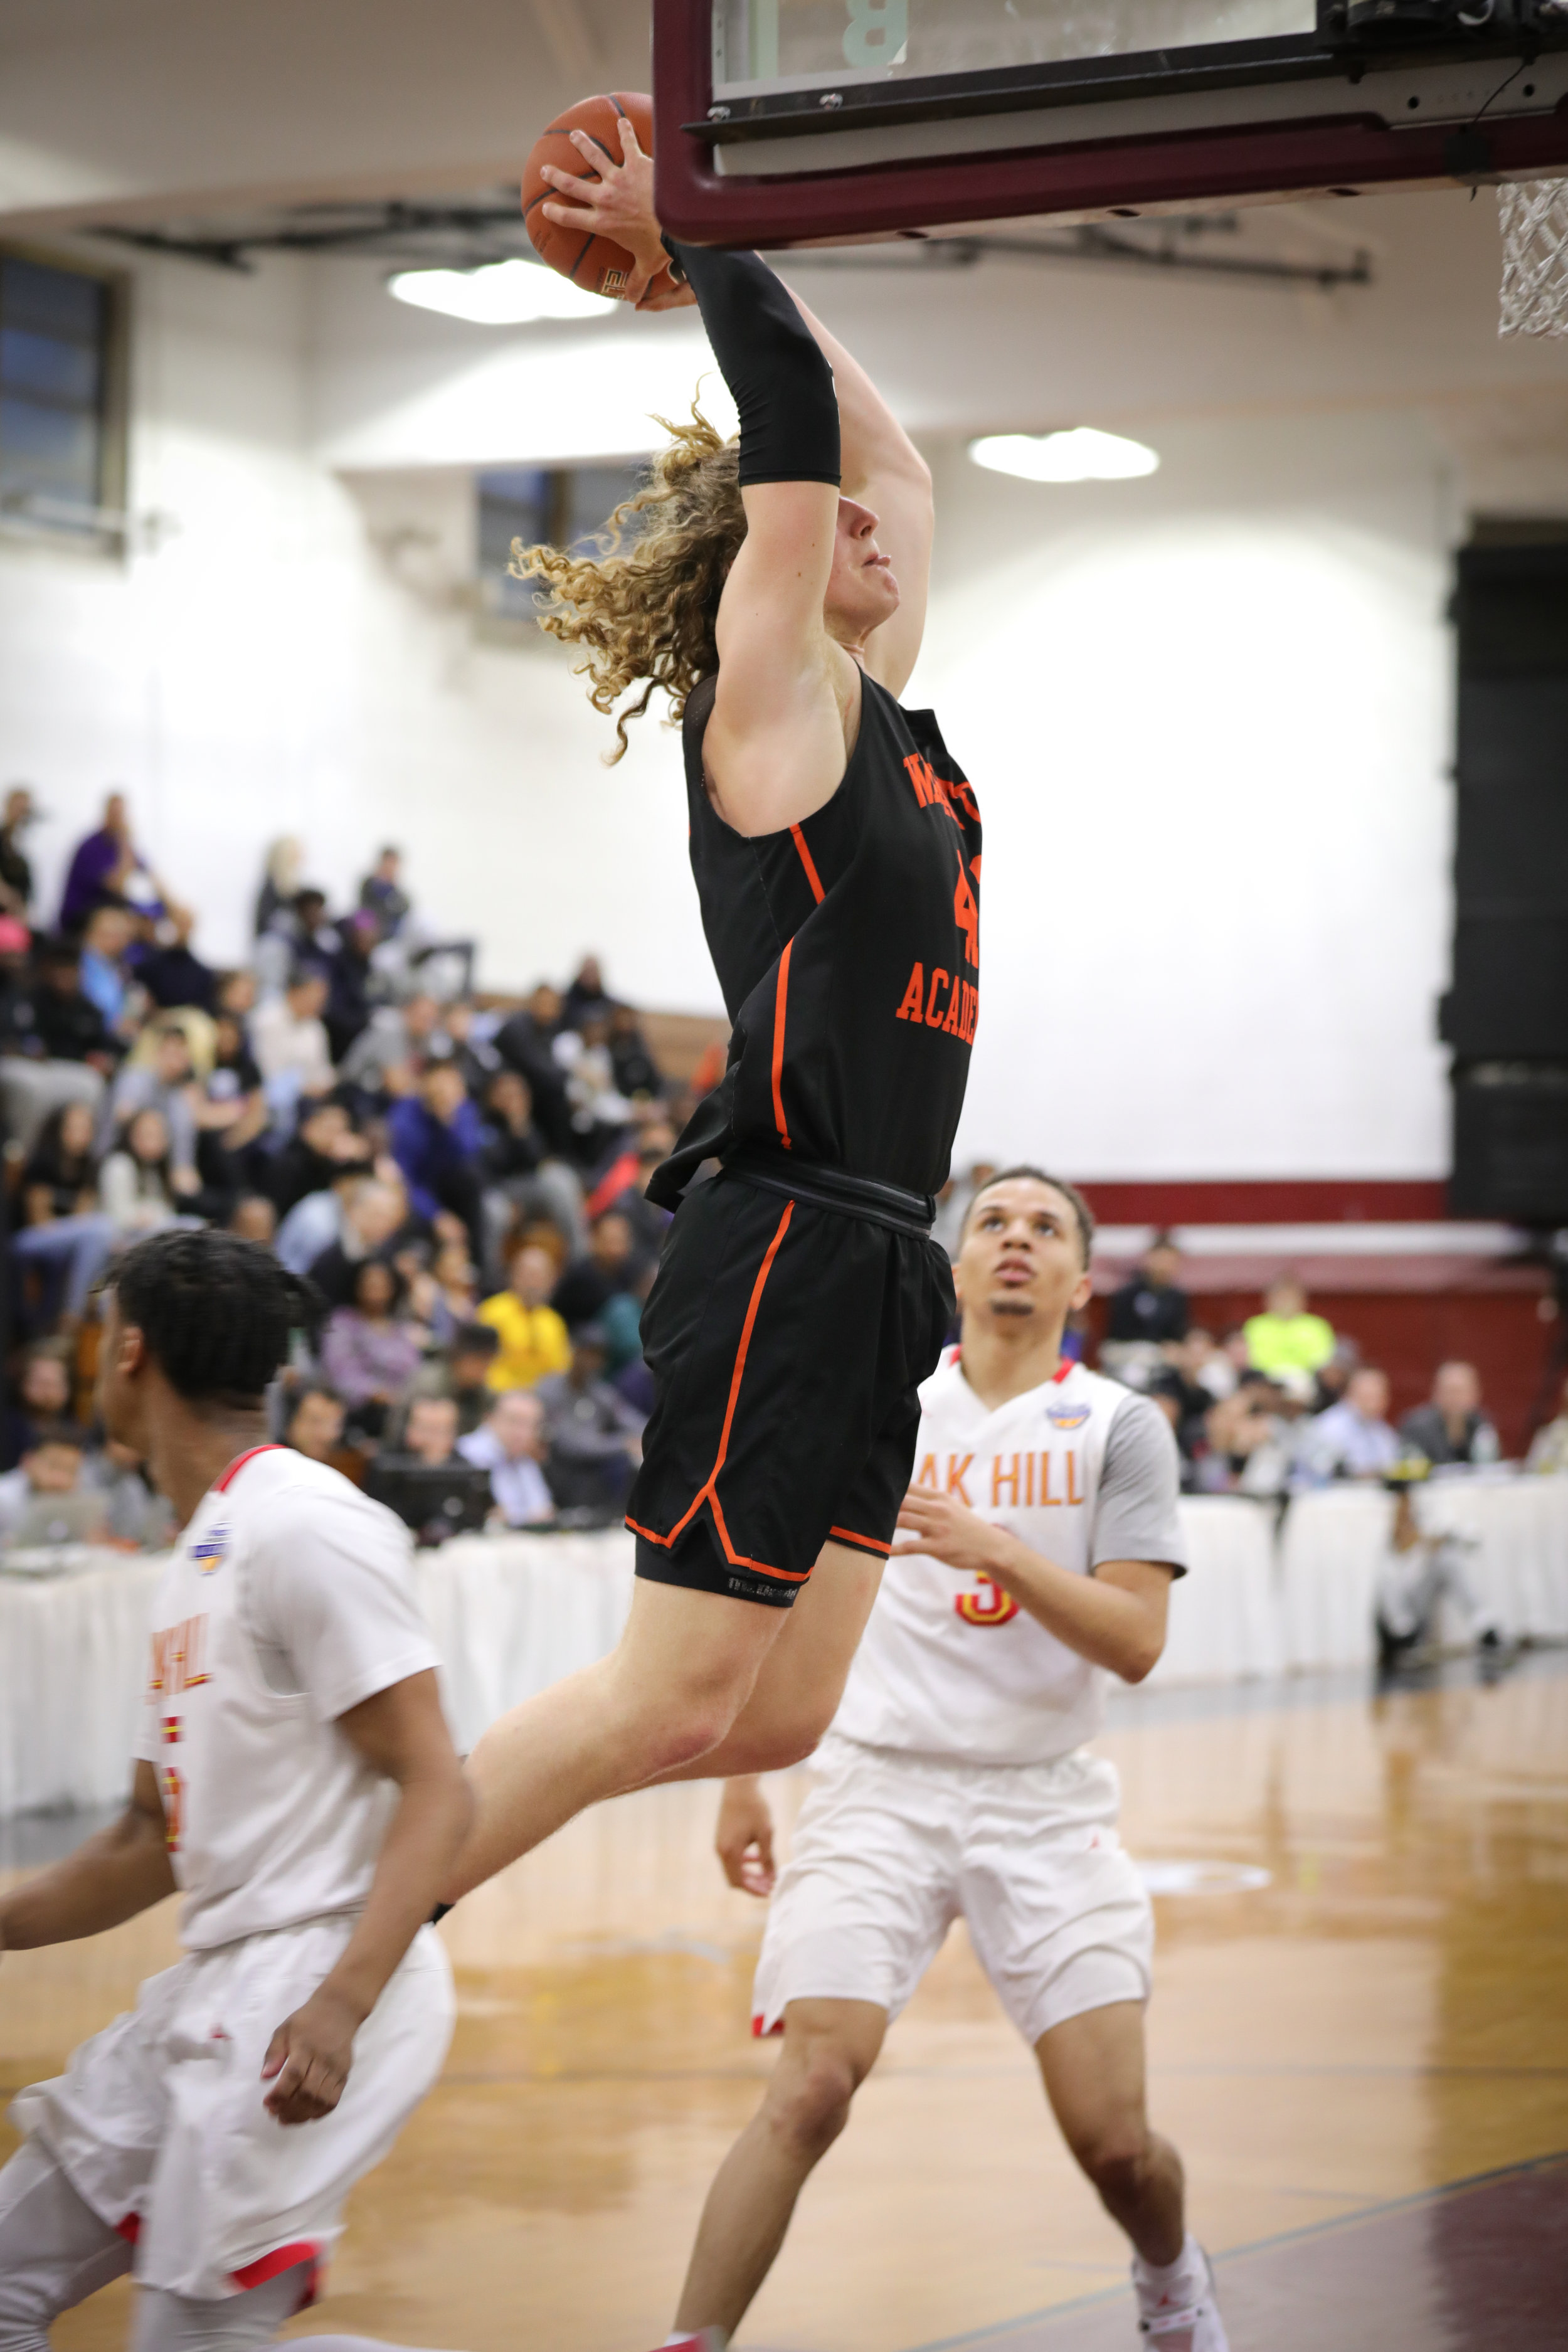 BBall_Geico_Nationals_2019 (47 of 59).jpg